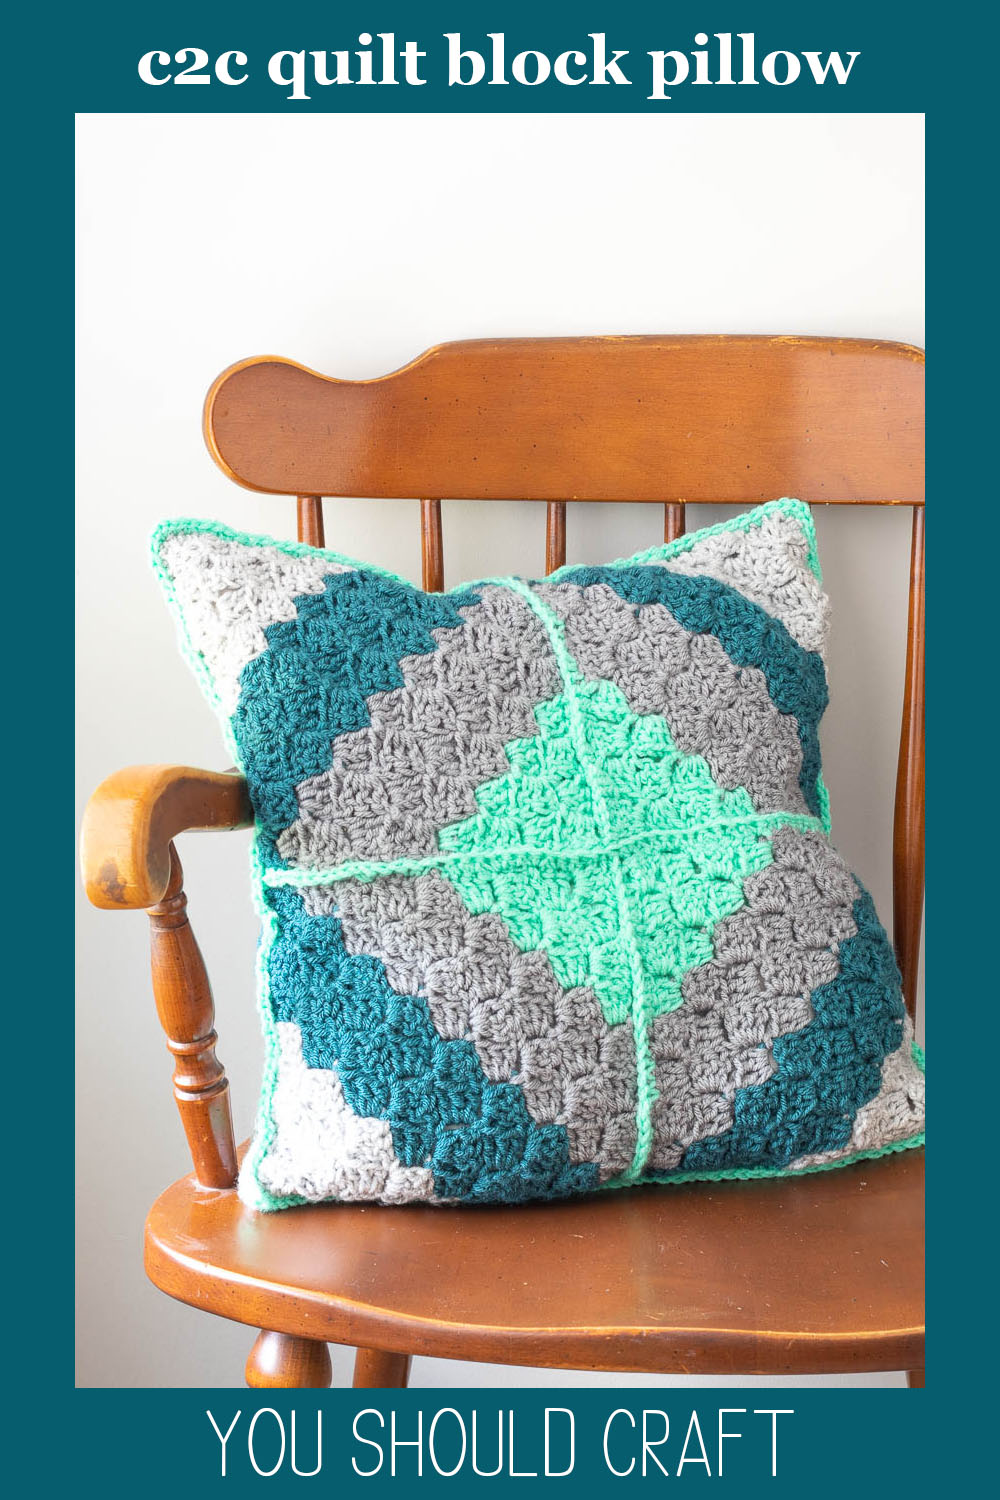 """diamond crochet pillow on a wooden chair with text """"c2c quilt block pillow - you should craft"""""""